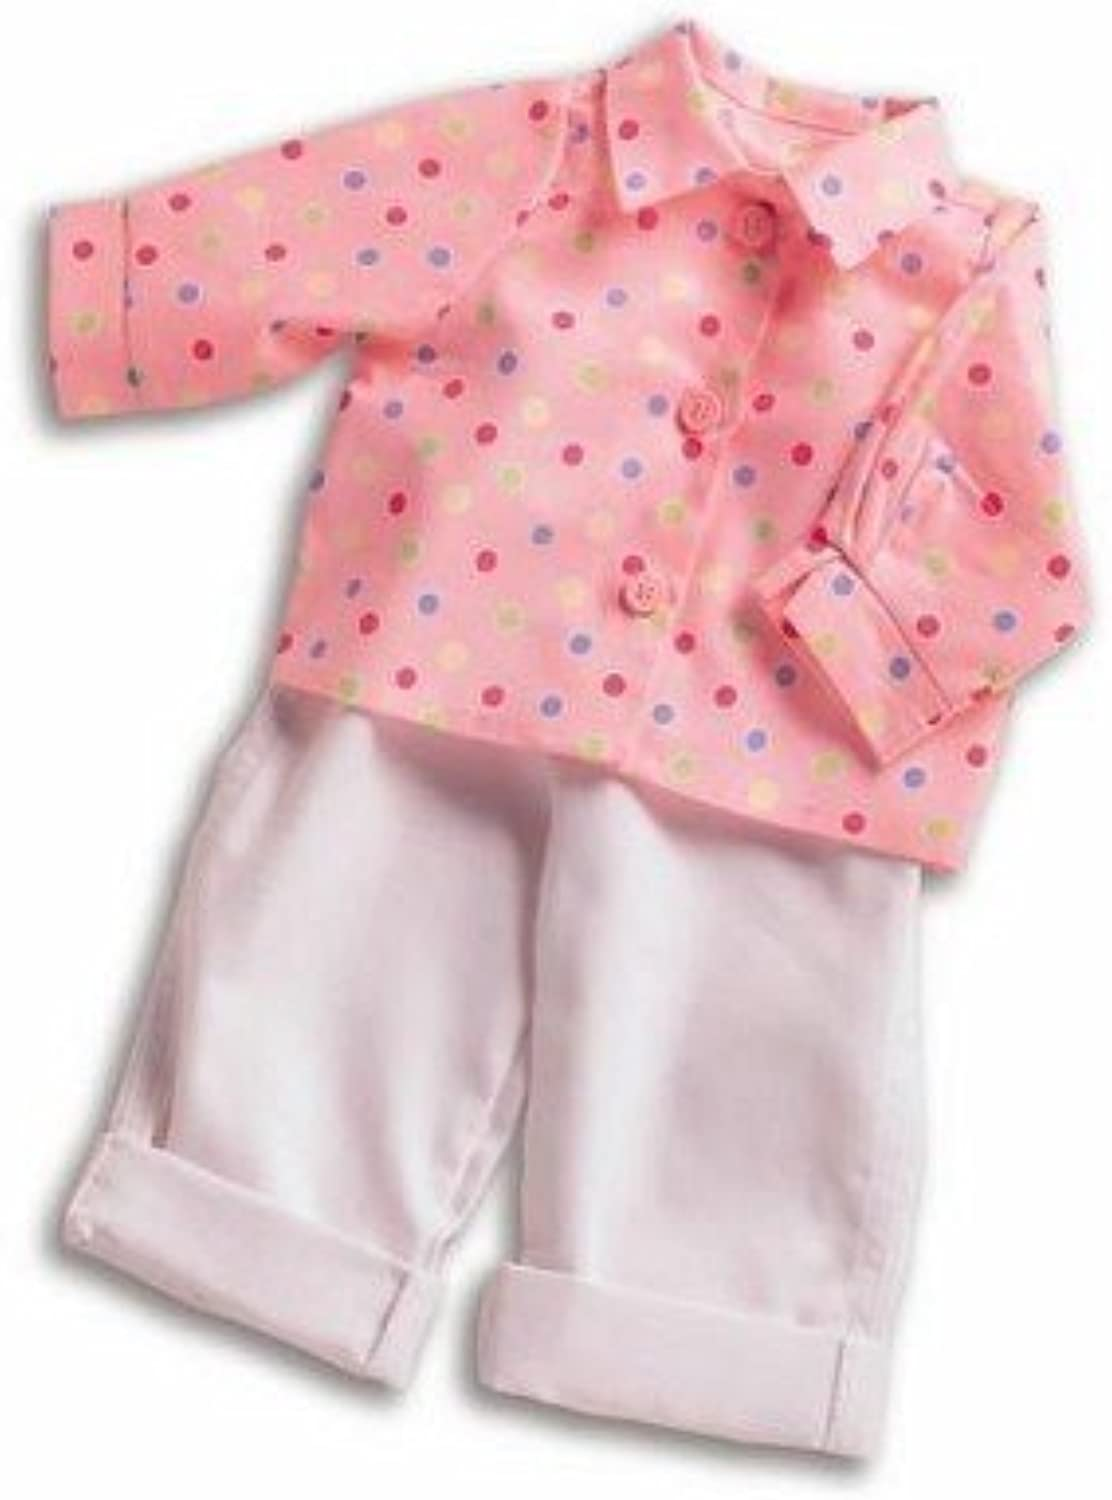 Polka Dot Shirt & White Jeans Outfit for Middleton Dolls 17 to 20 by Middleton Doll